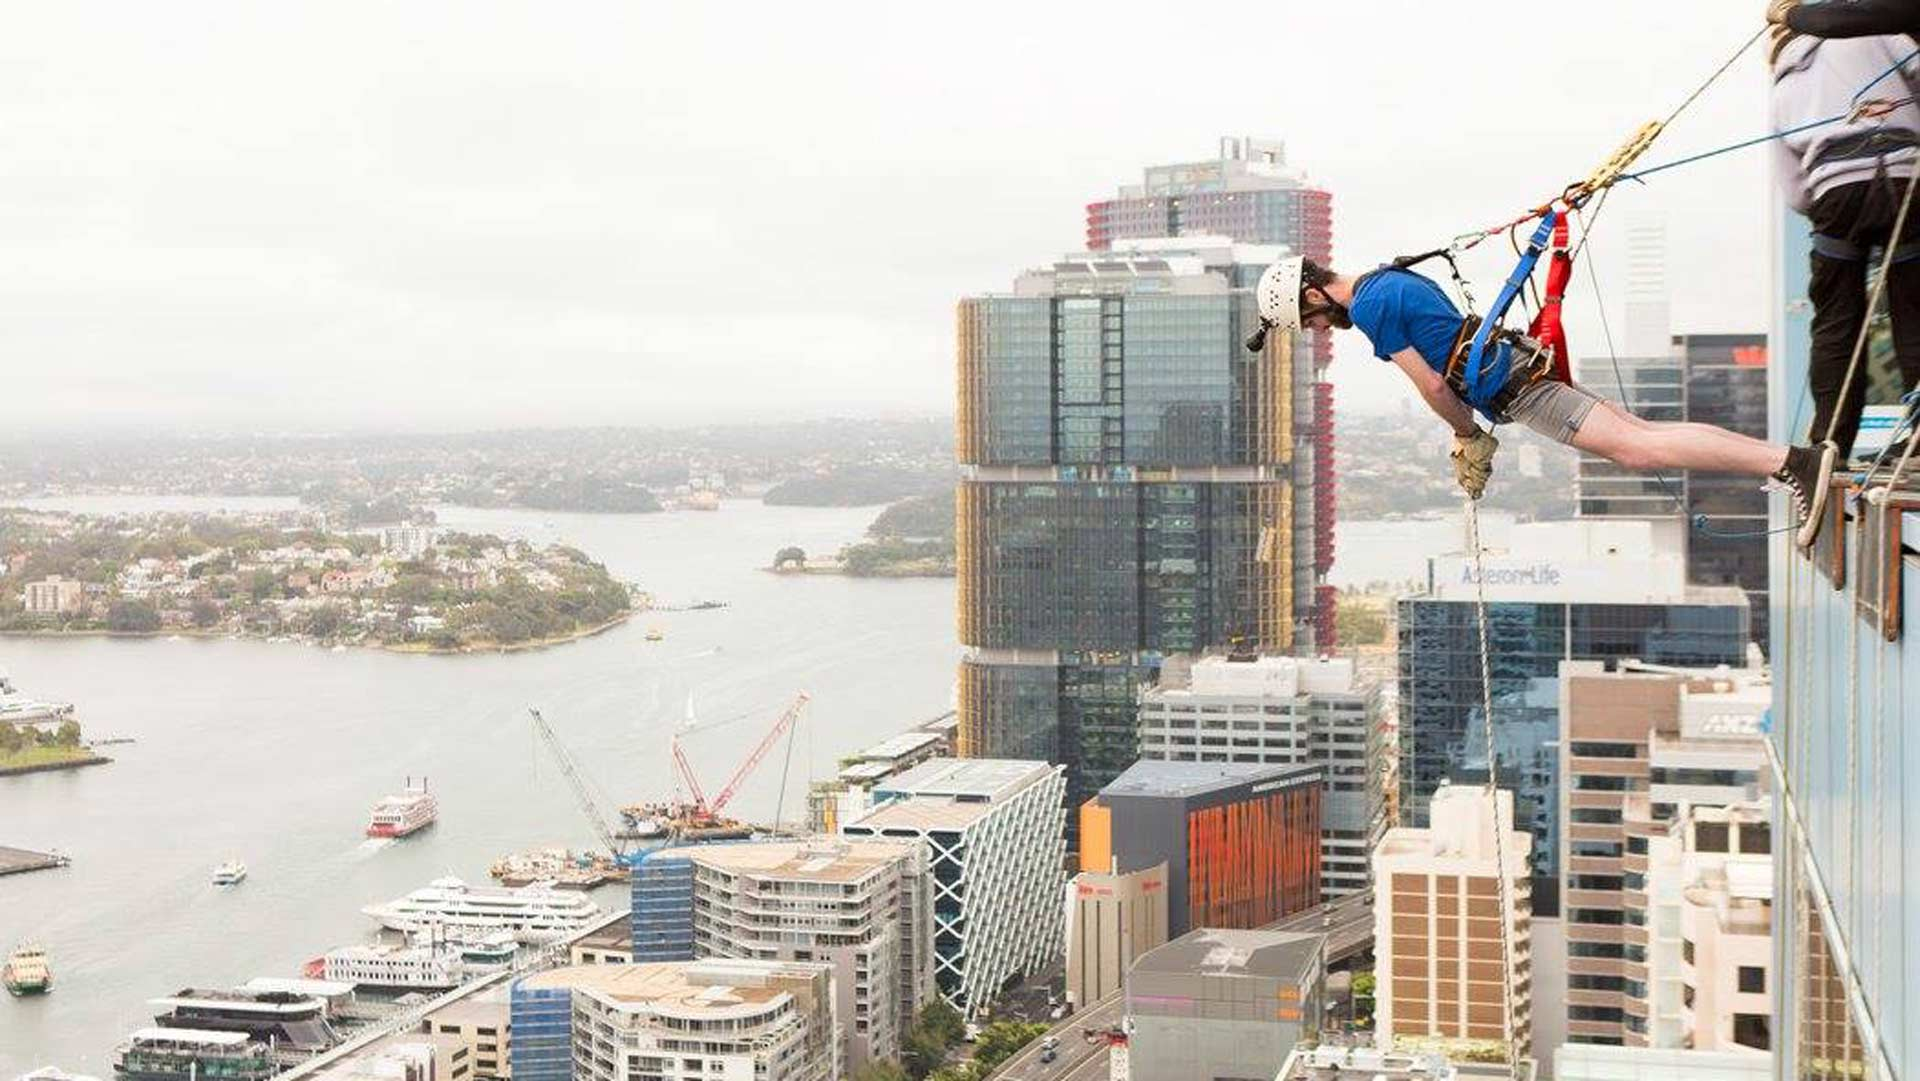 Sydneysiders Will Soon Be Able to Abseil Down a 33-Storey CBD Skyscraper